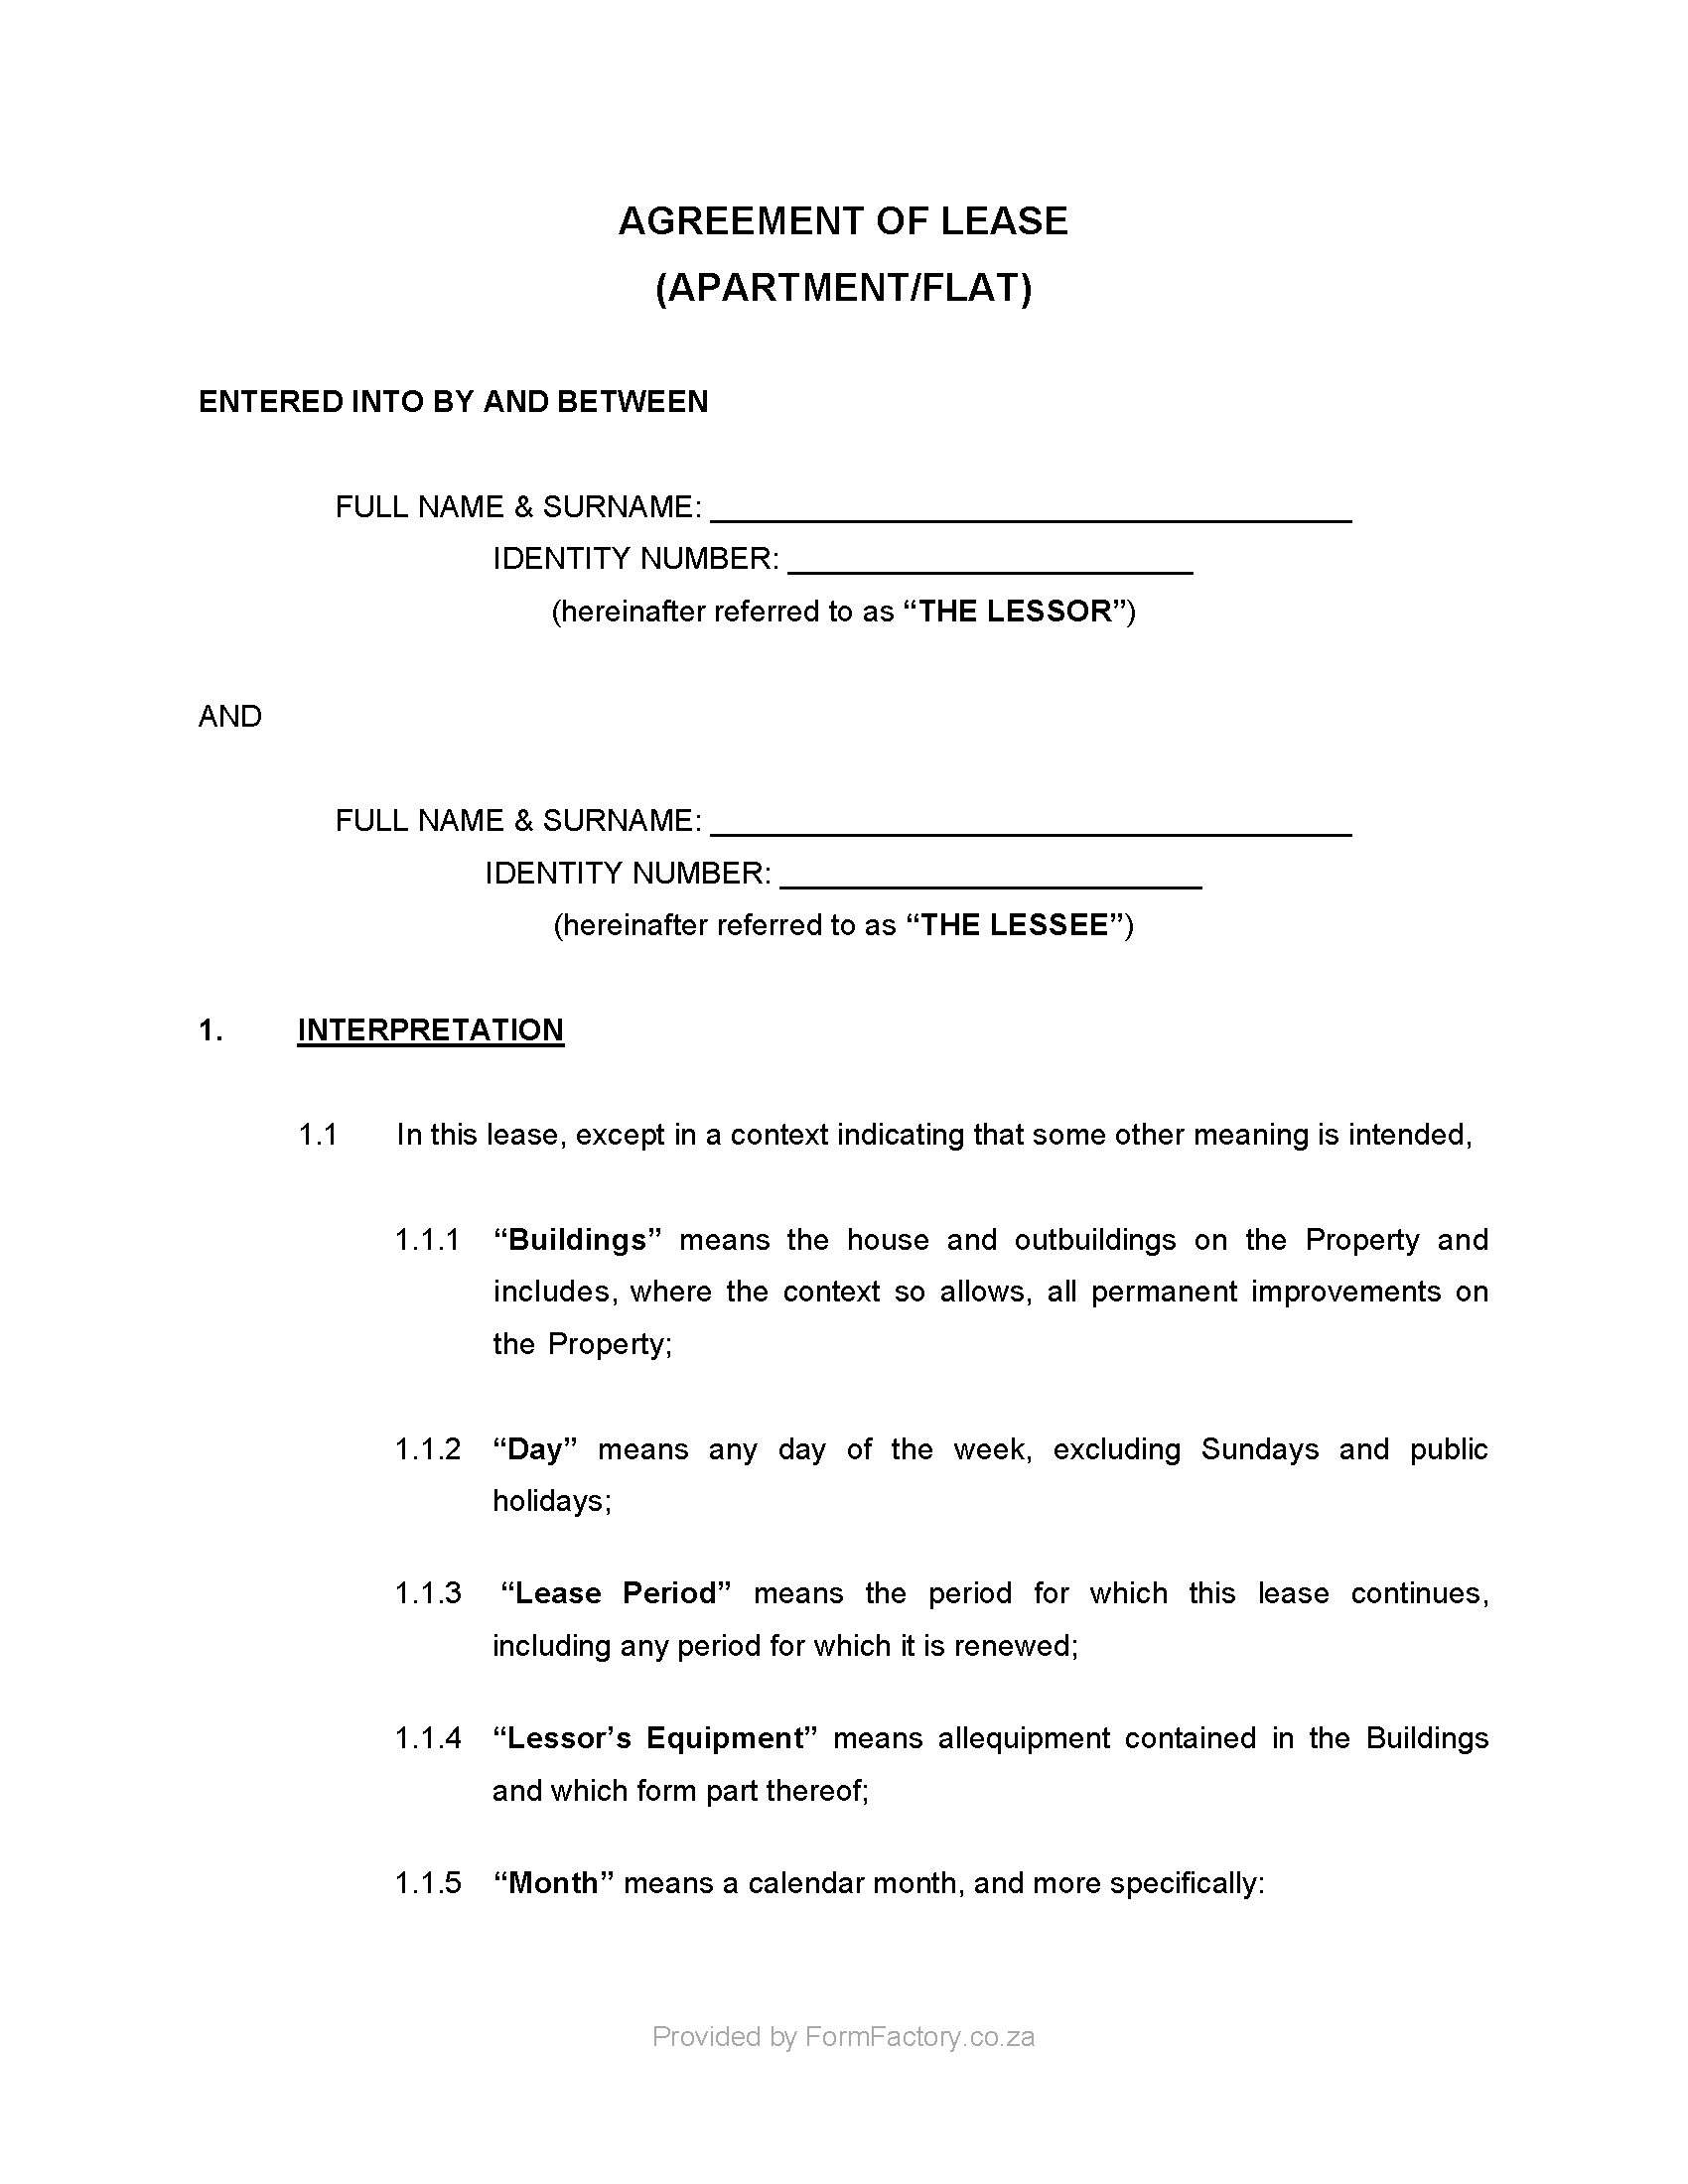 House Rental Agreement Letter Sample from formfactory.co.za